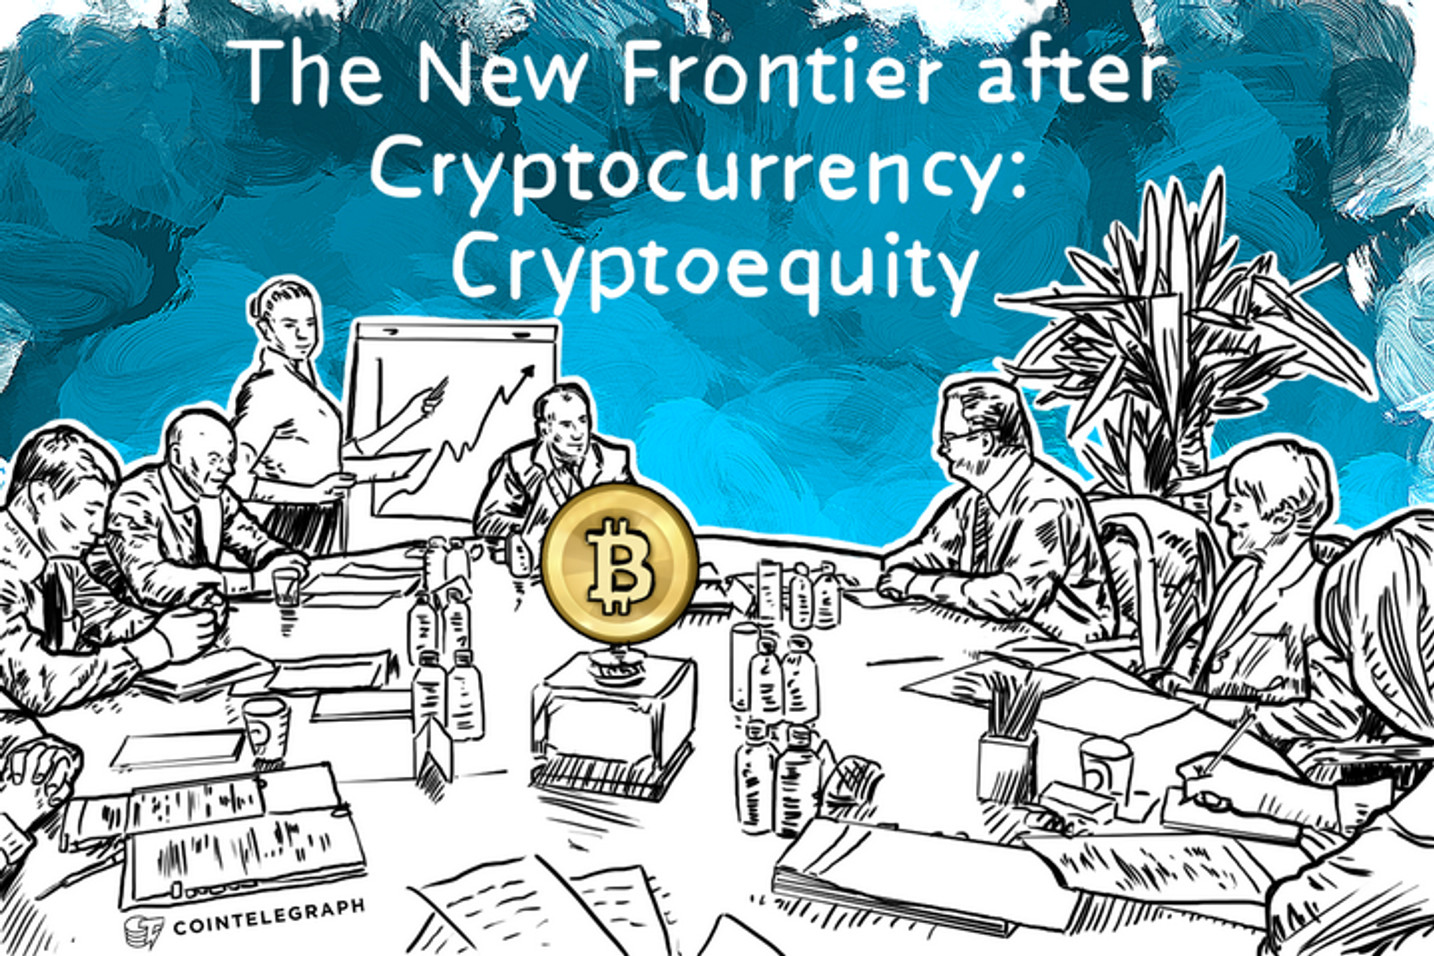 The New Frontier after Cryptocurrency: Cryptoequity